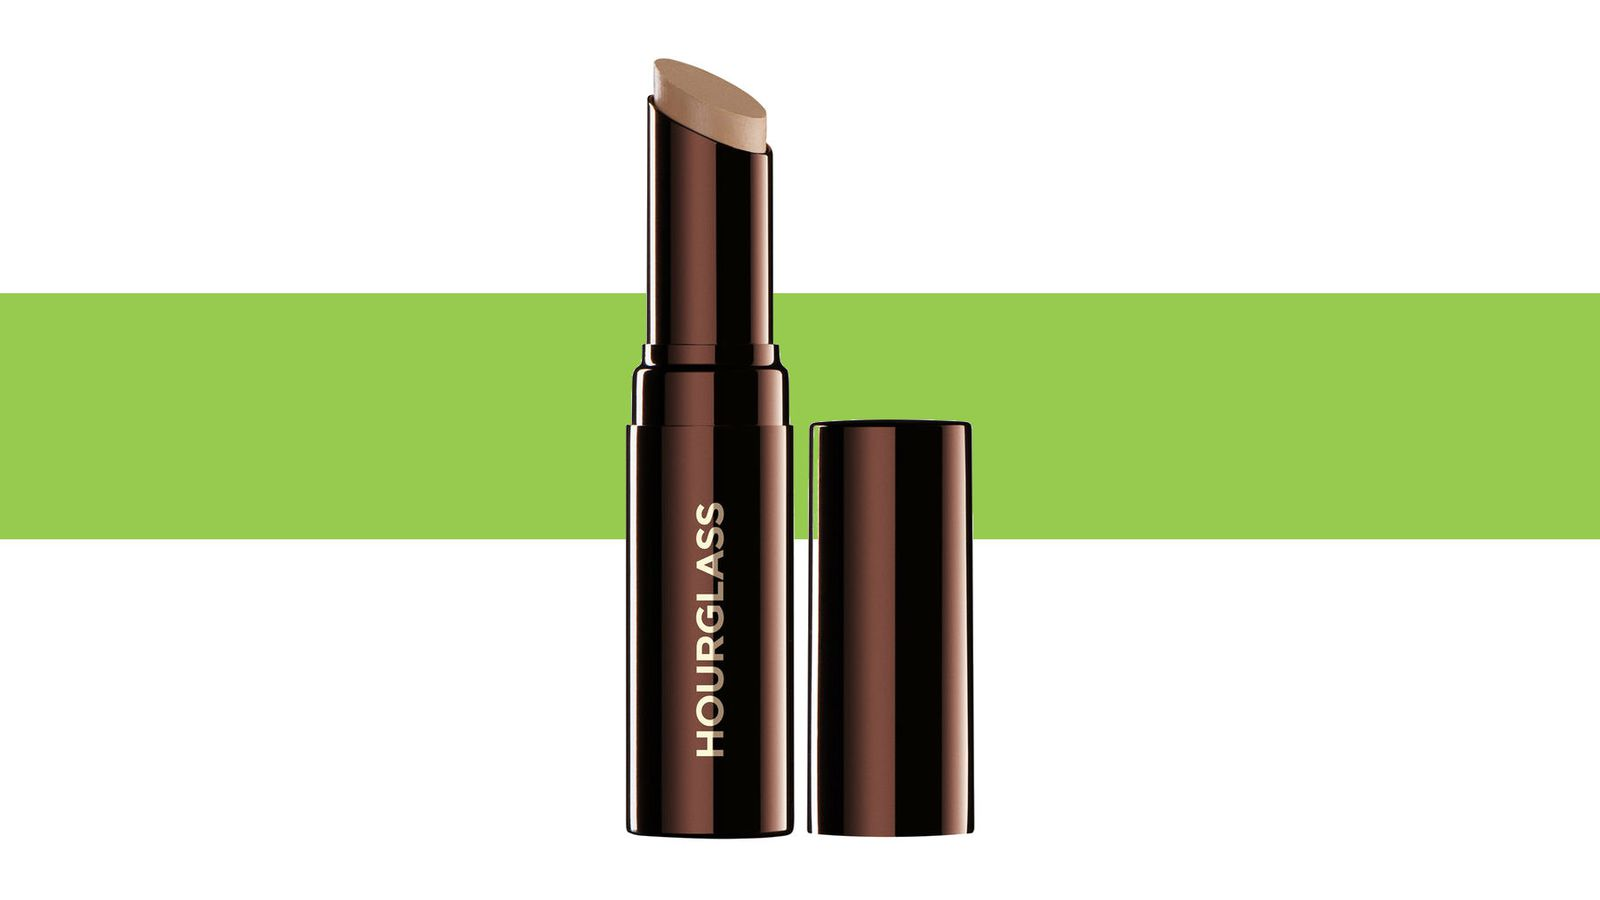 The Stick Concealer That Covers All Your Spots